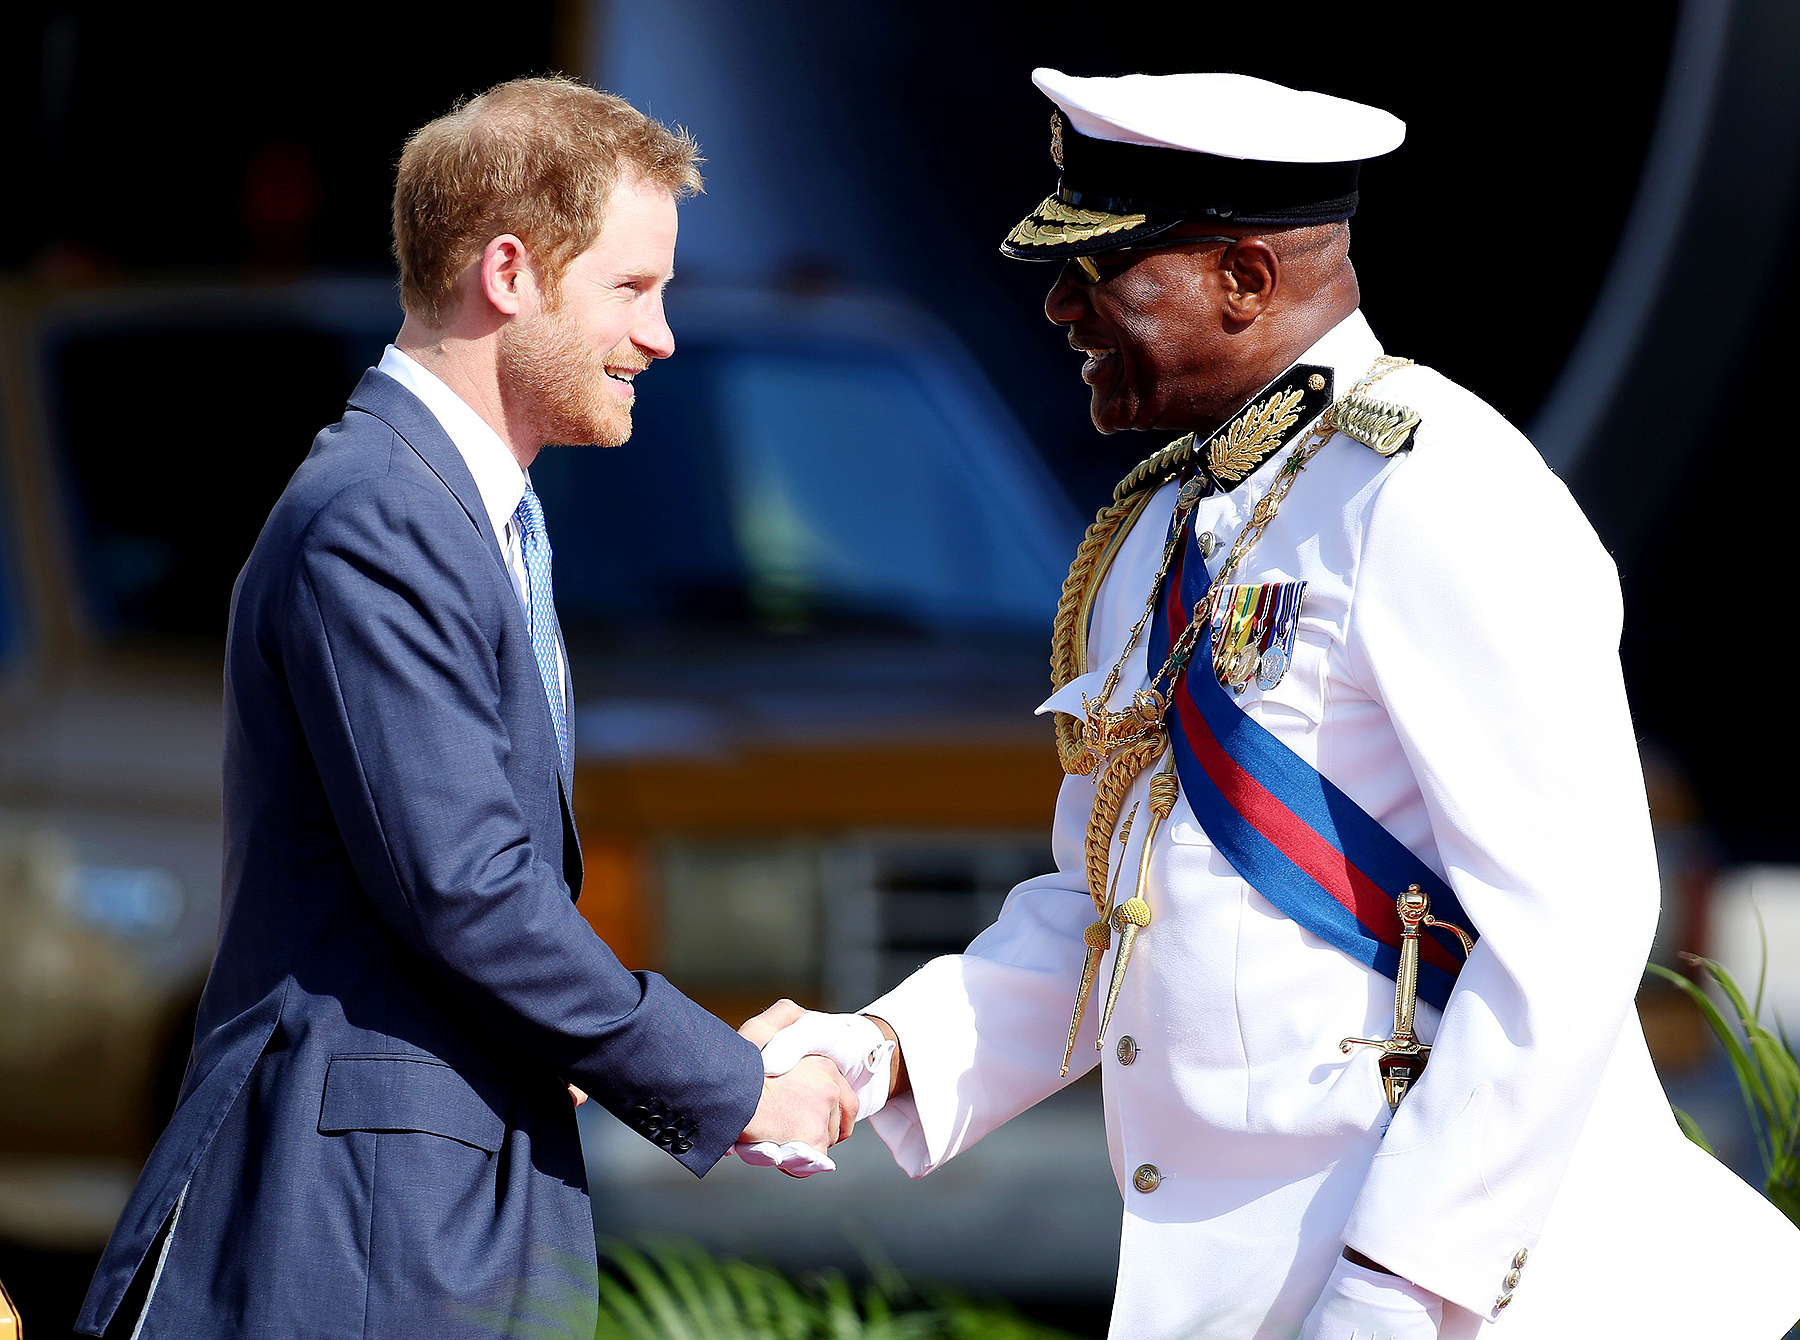 Prince Harry is greeted by the Governor General His Excellency Sir Rodney Williams on his arrival at V.C. Bird International Airport in Antigua at the start of his 15-day tour of the Caribbean.